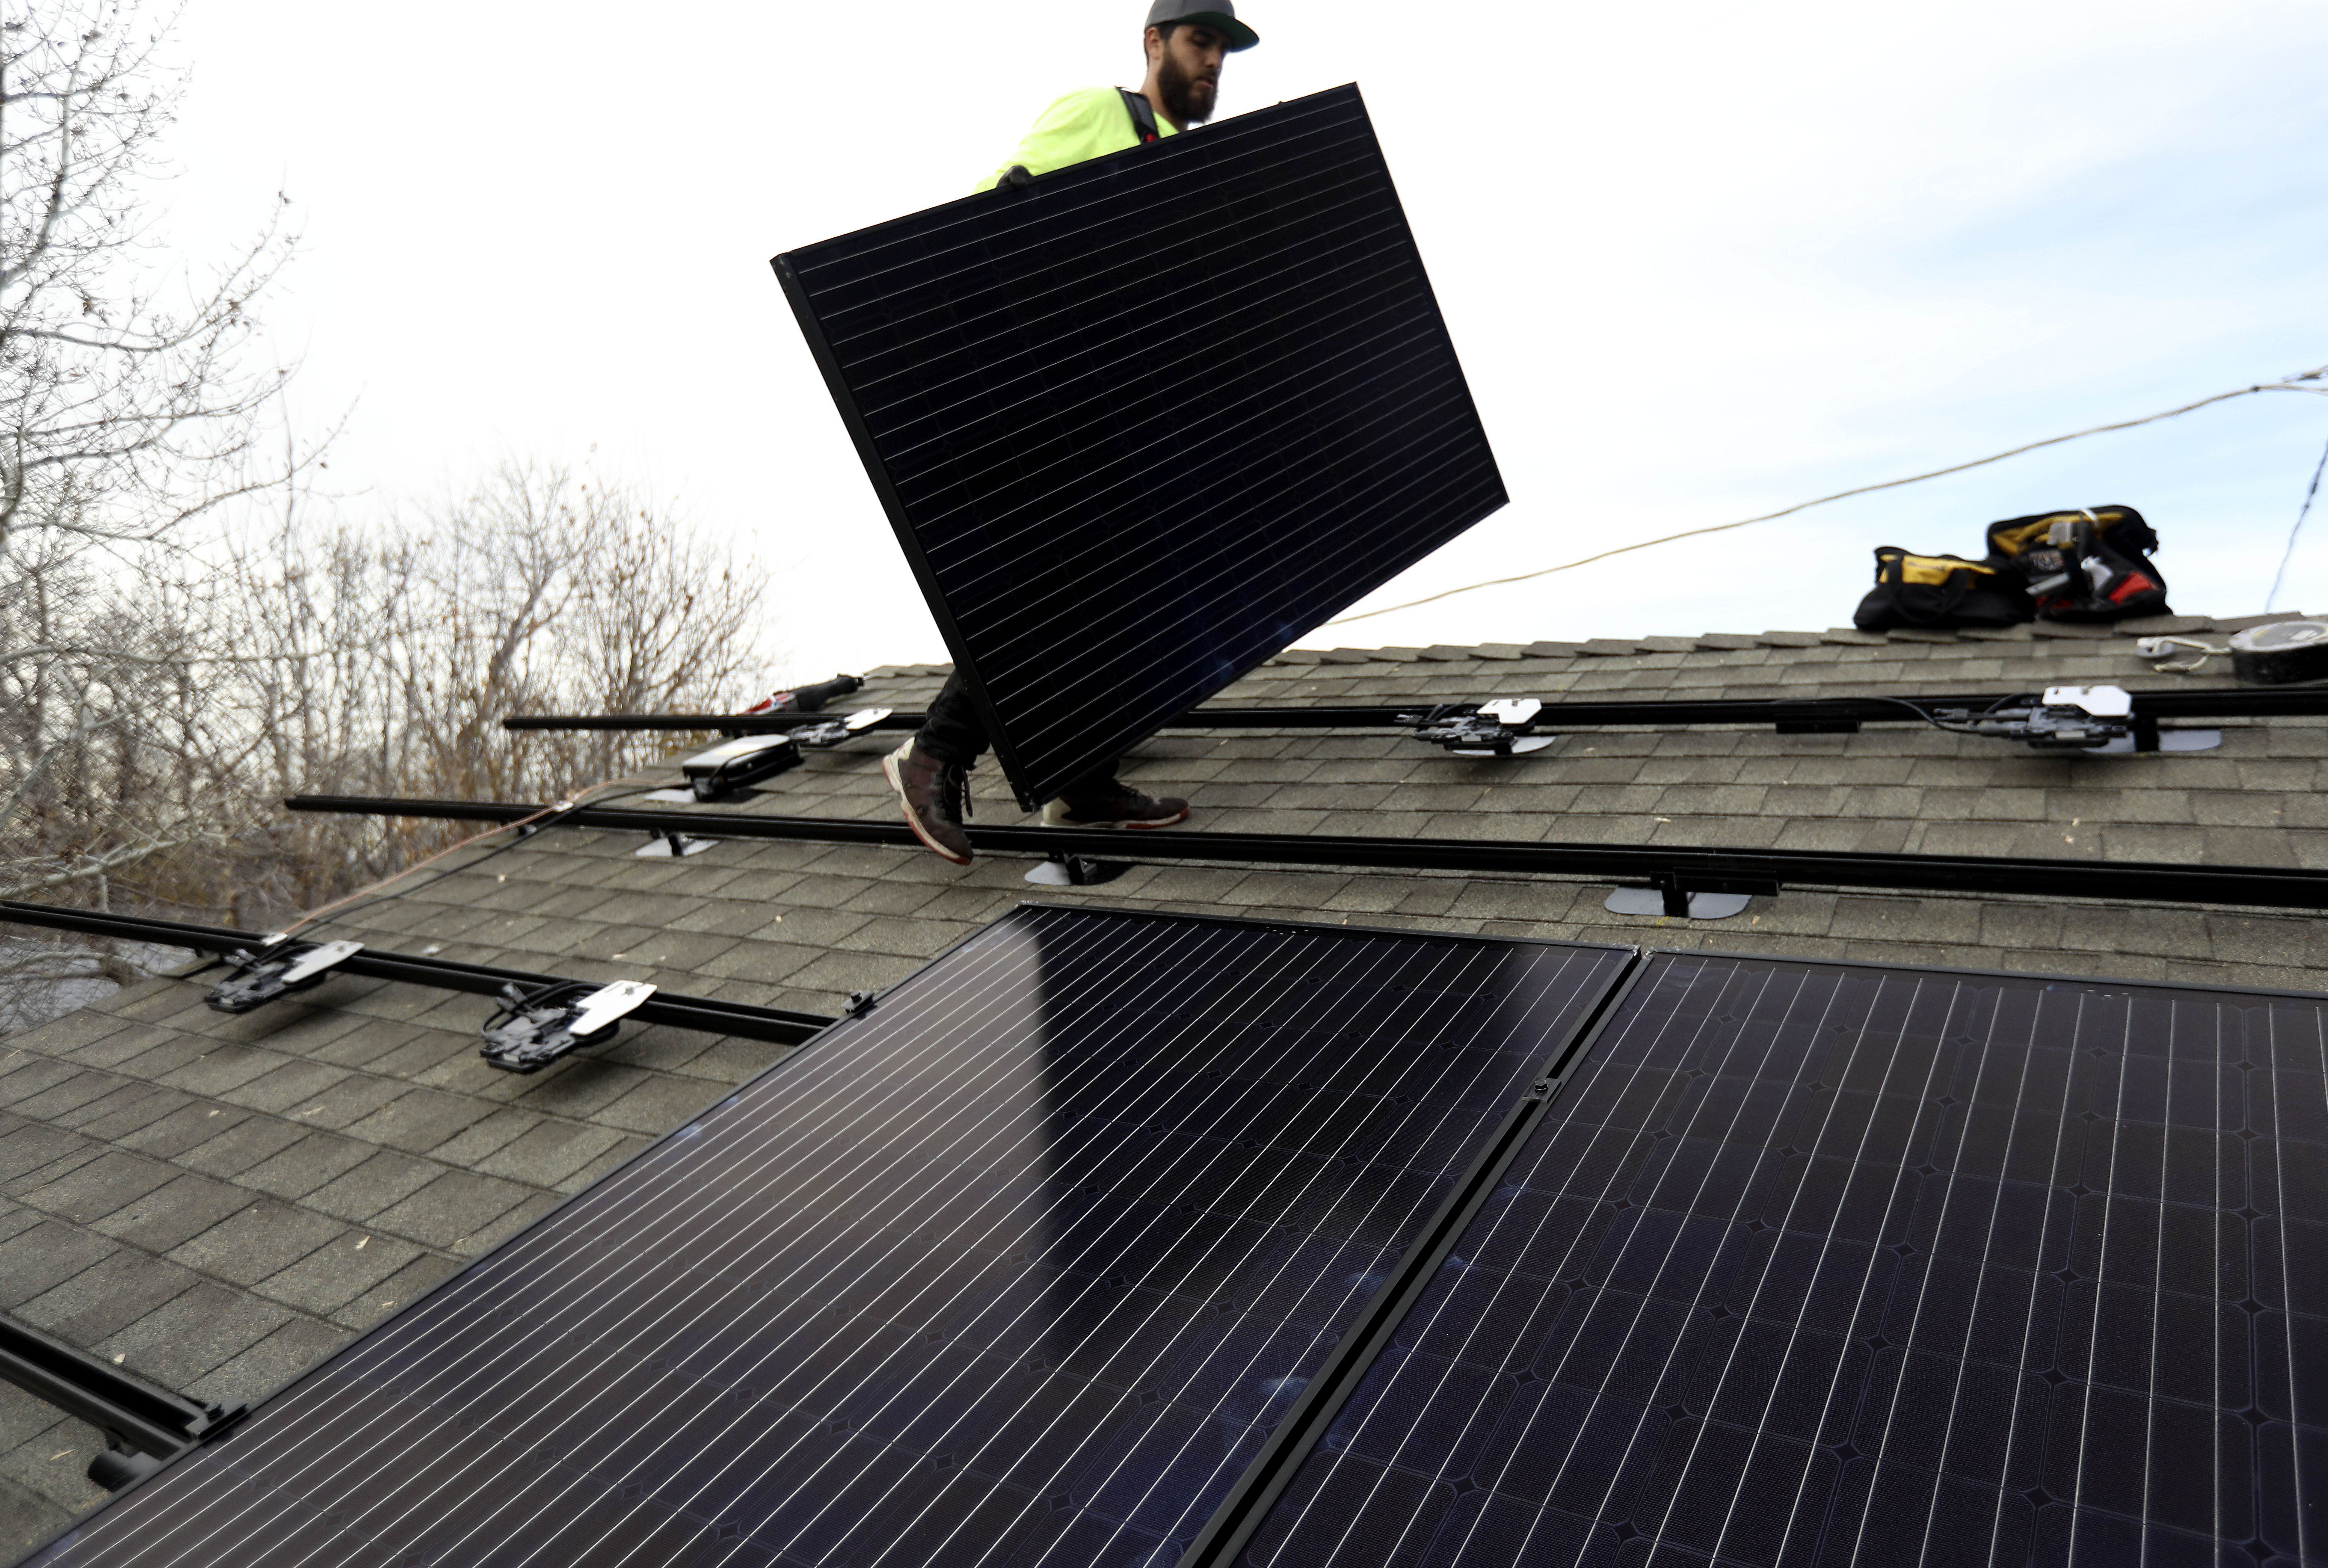 Dom Ontiveros, of Auric Energy, installs a solar panel on the 1,000th home that utilized the Empower SLC Solar program in Salt Lake City on Thursday, Nov. 14, 2019. Empower SLC Solar, a community-led program in Salt Lake County, helps residents overcome the logistical and financial hurdles of going solar.